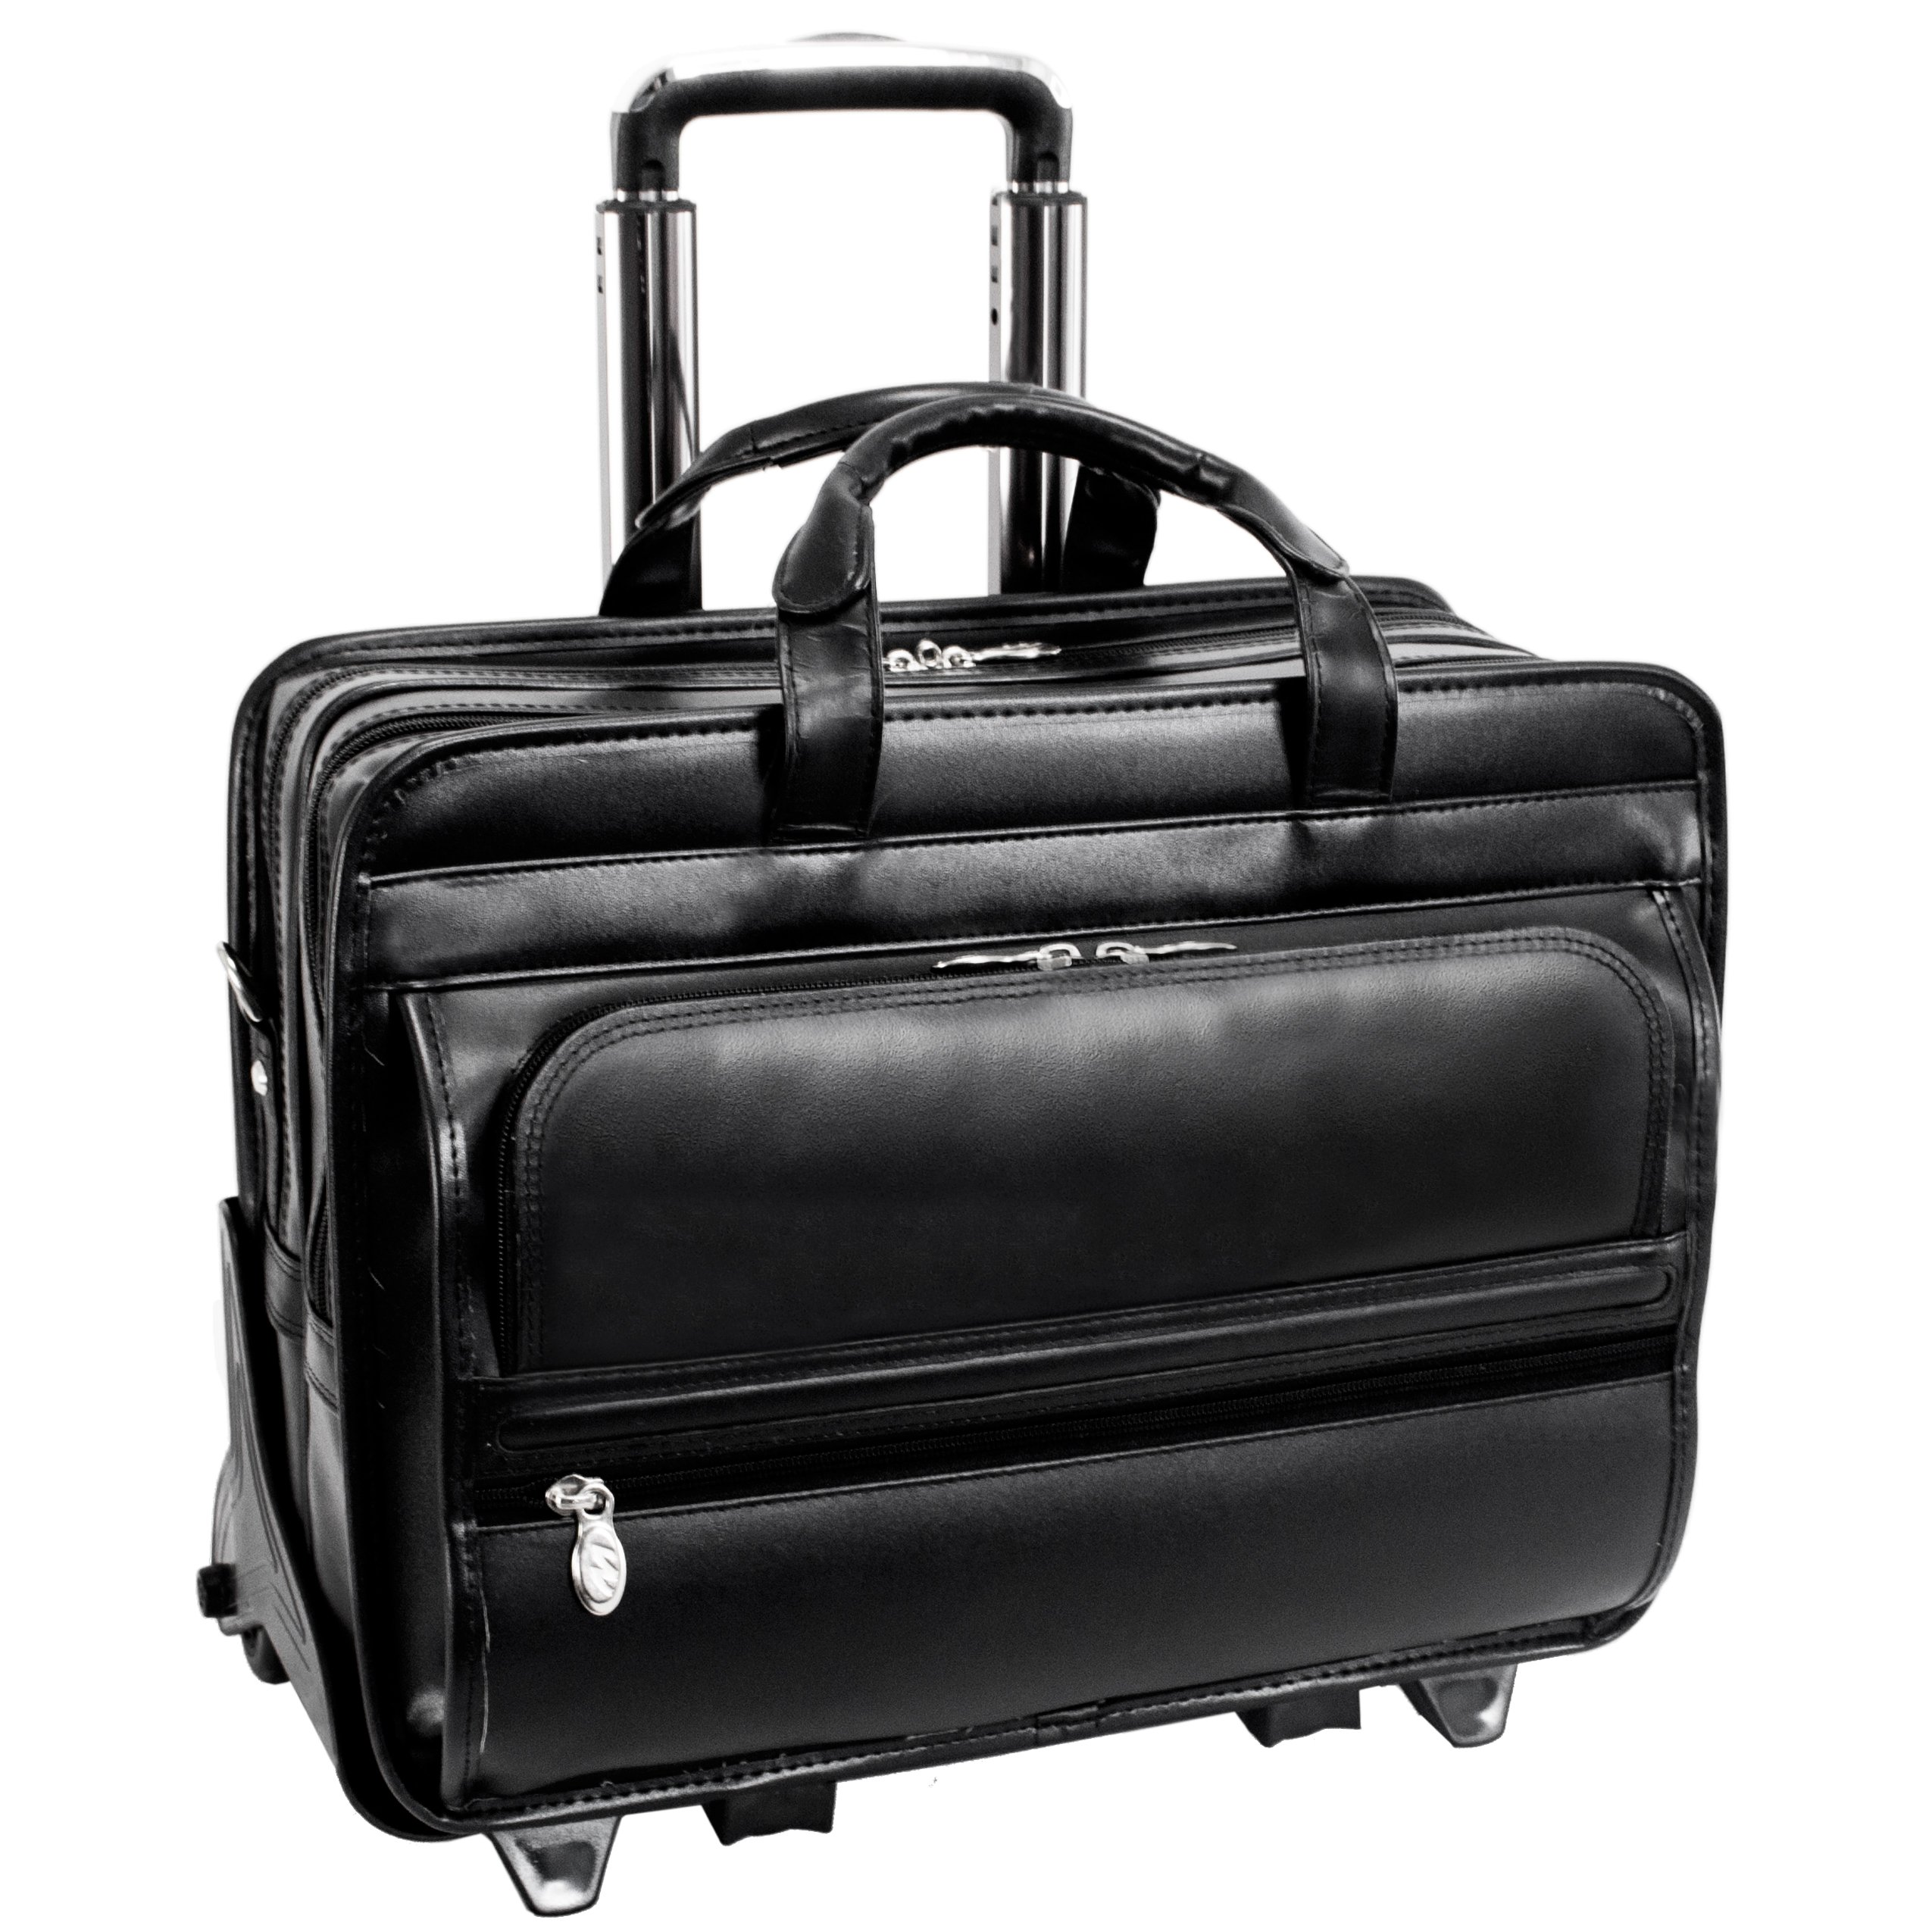 McKleinUSA FRANKLIN 86445 Black Leather 17 Detachable Wheeled Laptop Case US PATENT # 6,595,334 by McKleinUSA